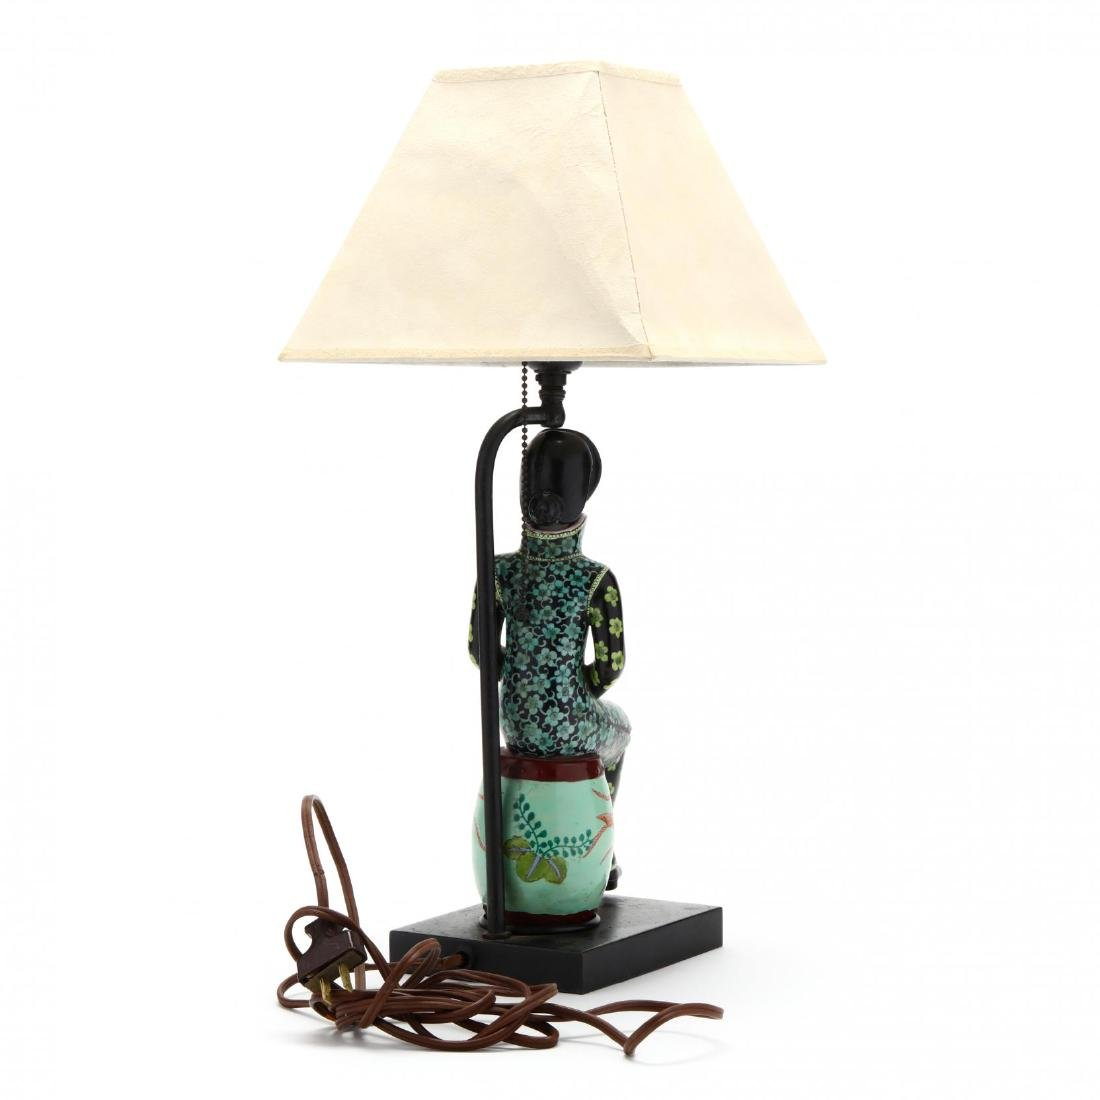 A Chinese Figurine Lamp - 3